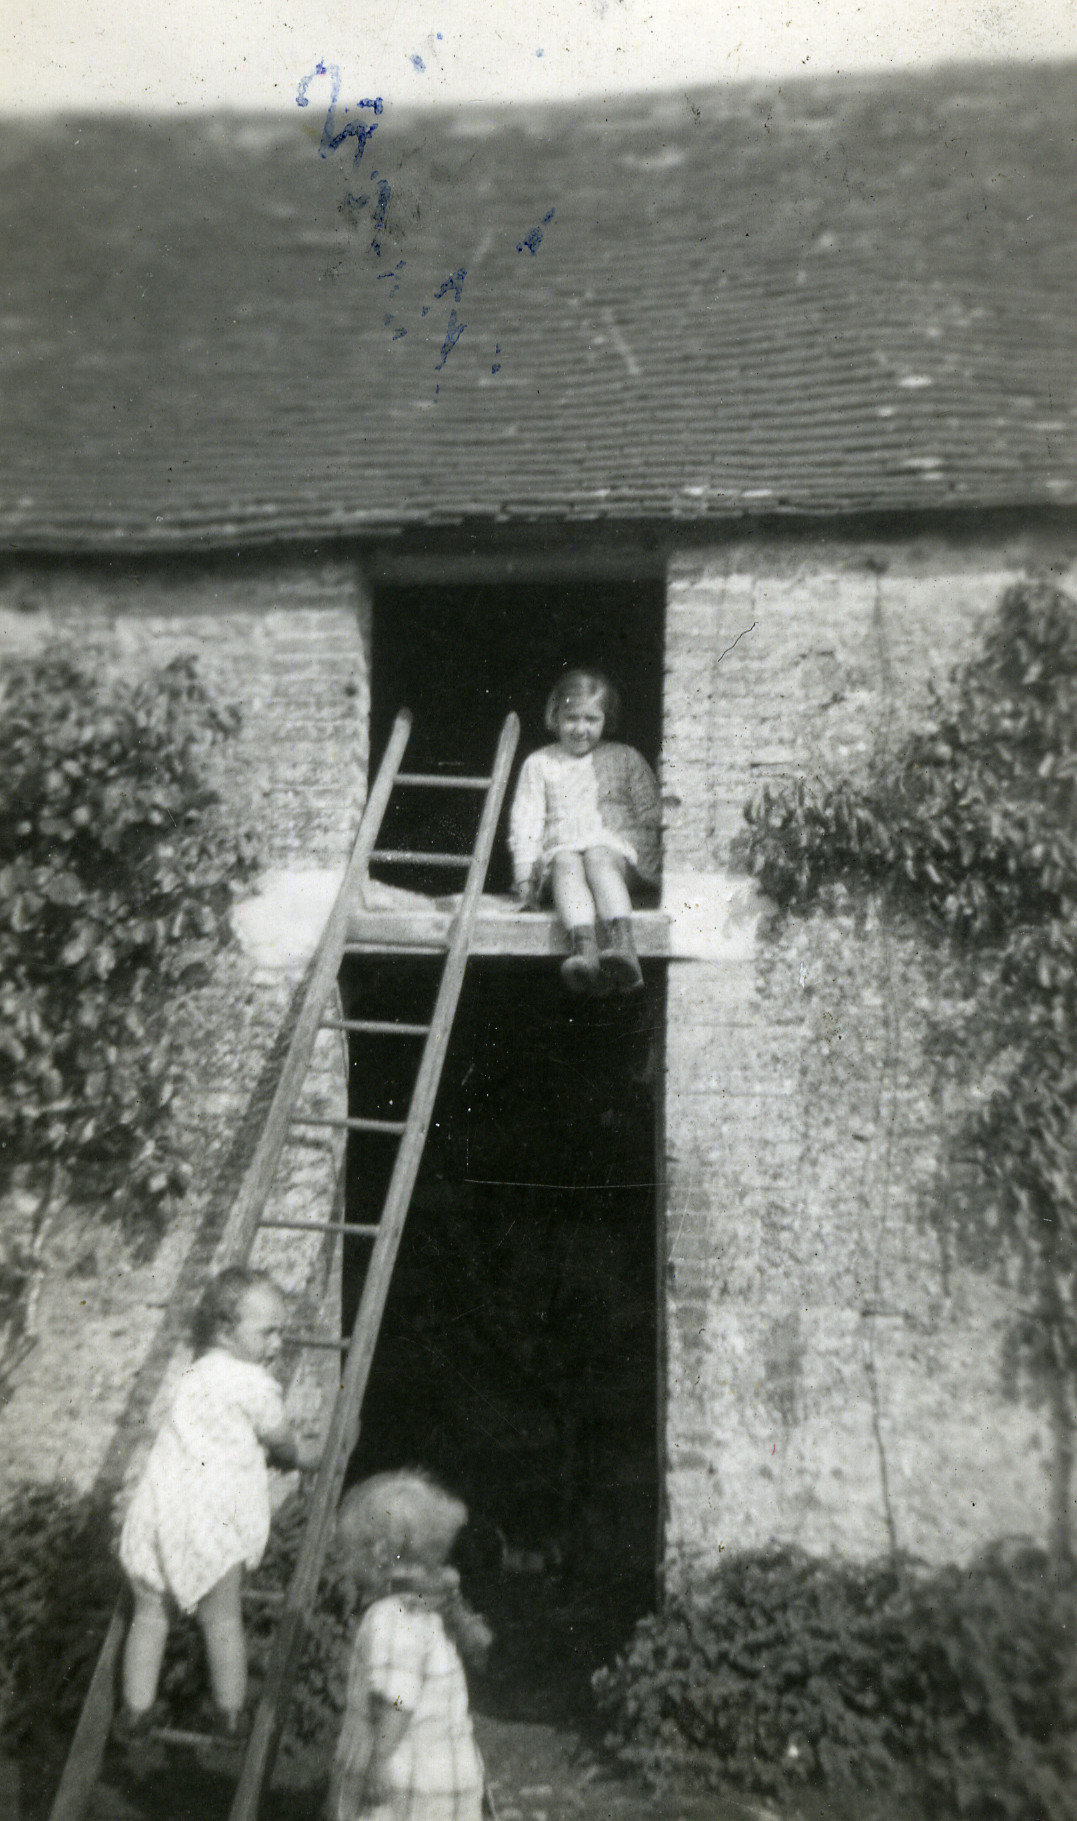 Three children, two of them Jewish children in hiding, play together by a ladder.  Pictured are Mireille (top) and her brother Maurice (on the ladder), with Jean, a non-Jewish child that the Boutte family also cared for.